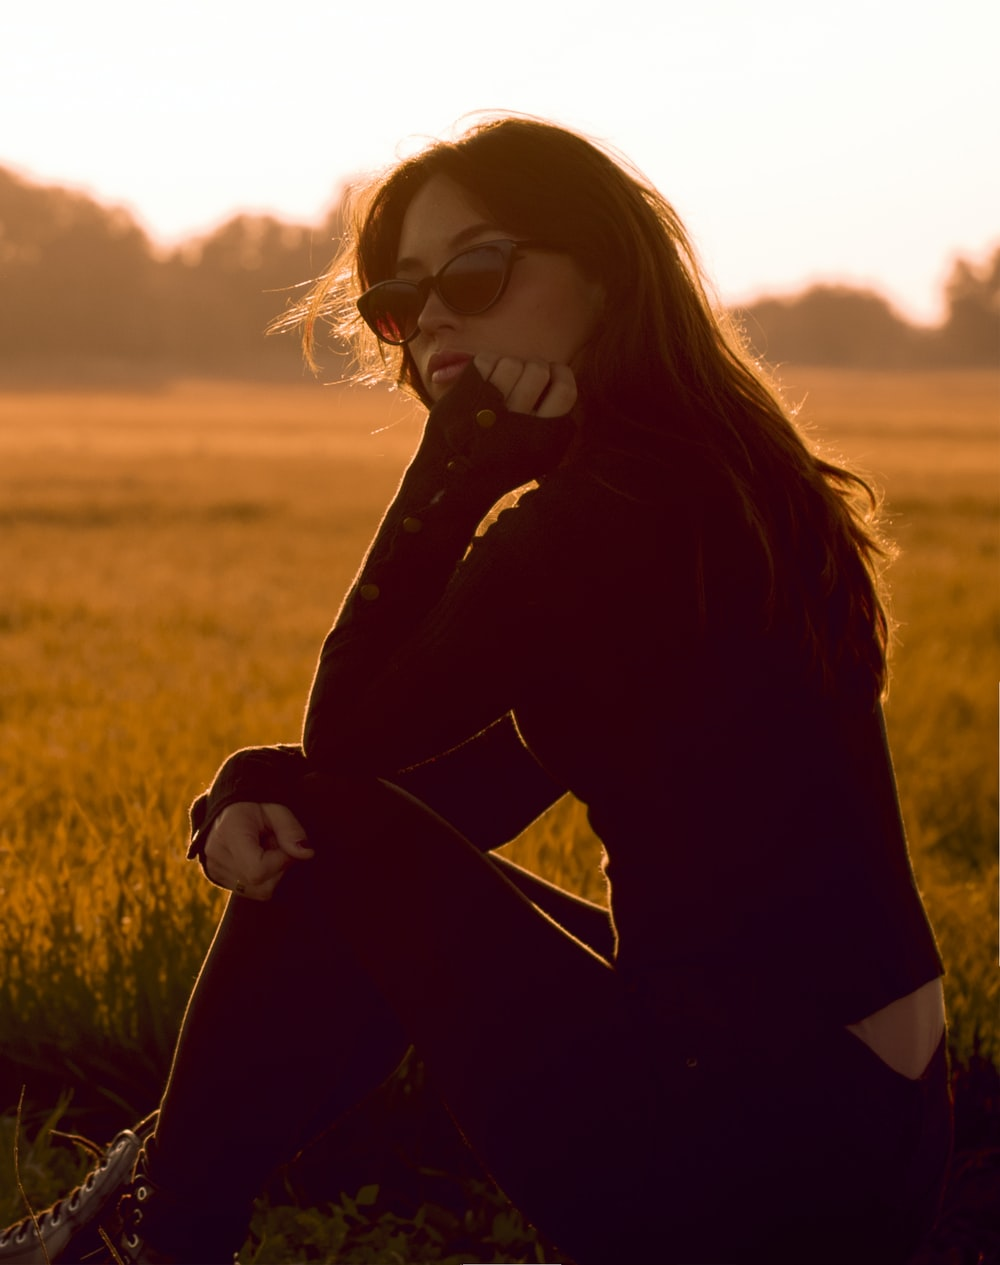 woman in black long sleeve shirt and black sunglasses standing on green grass field during daytime